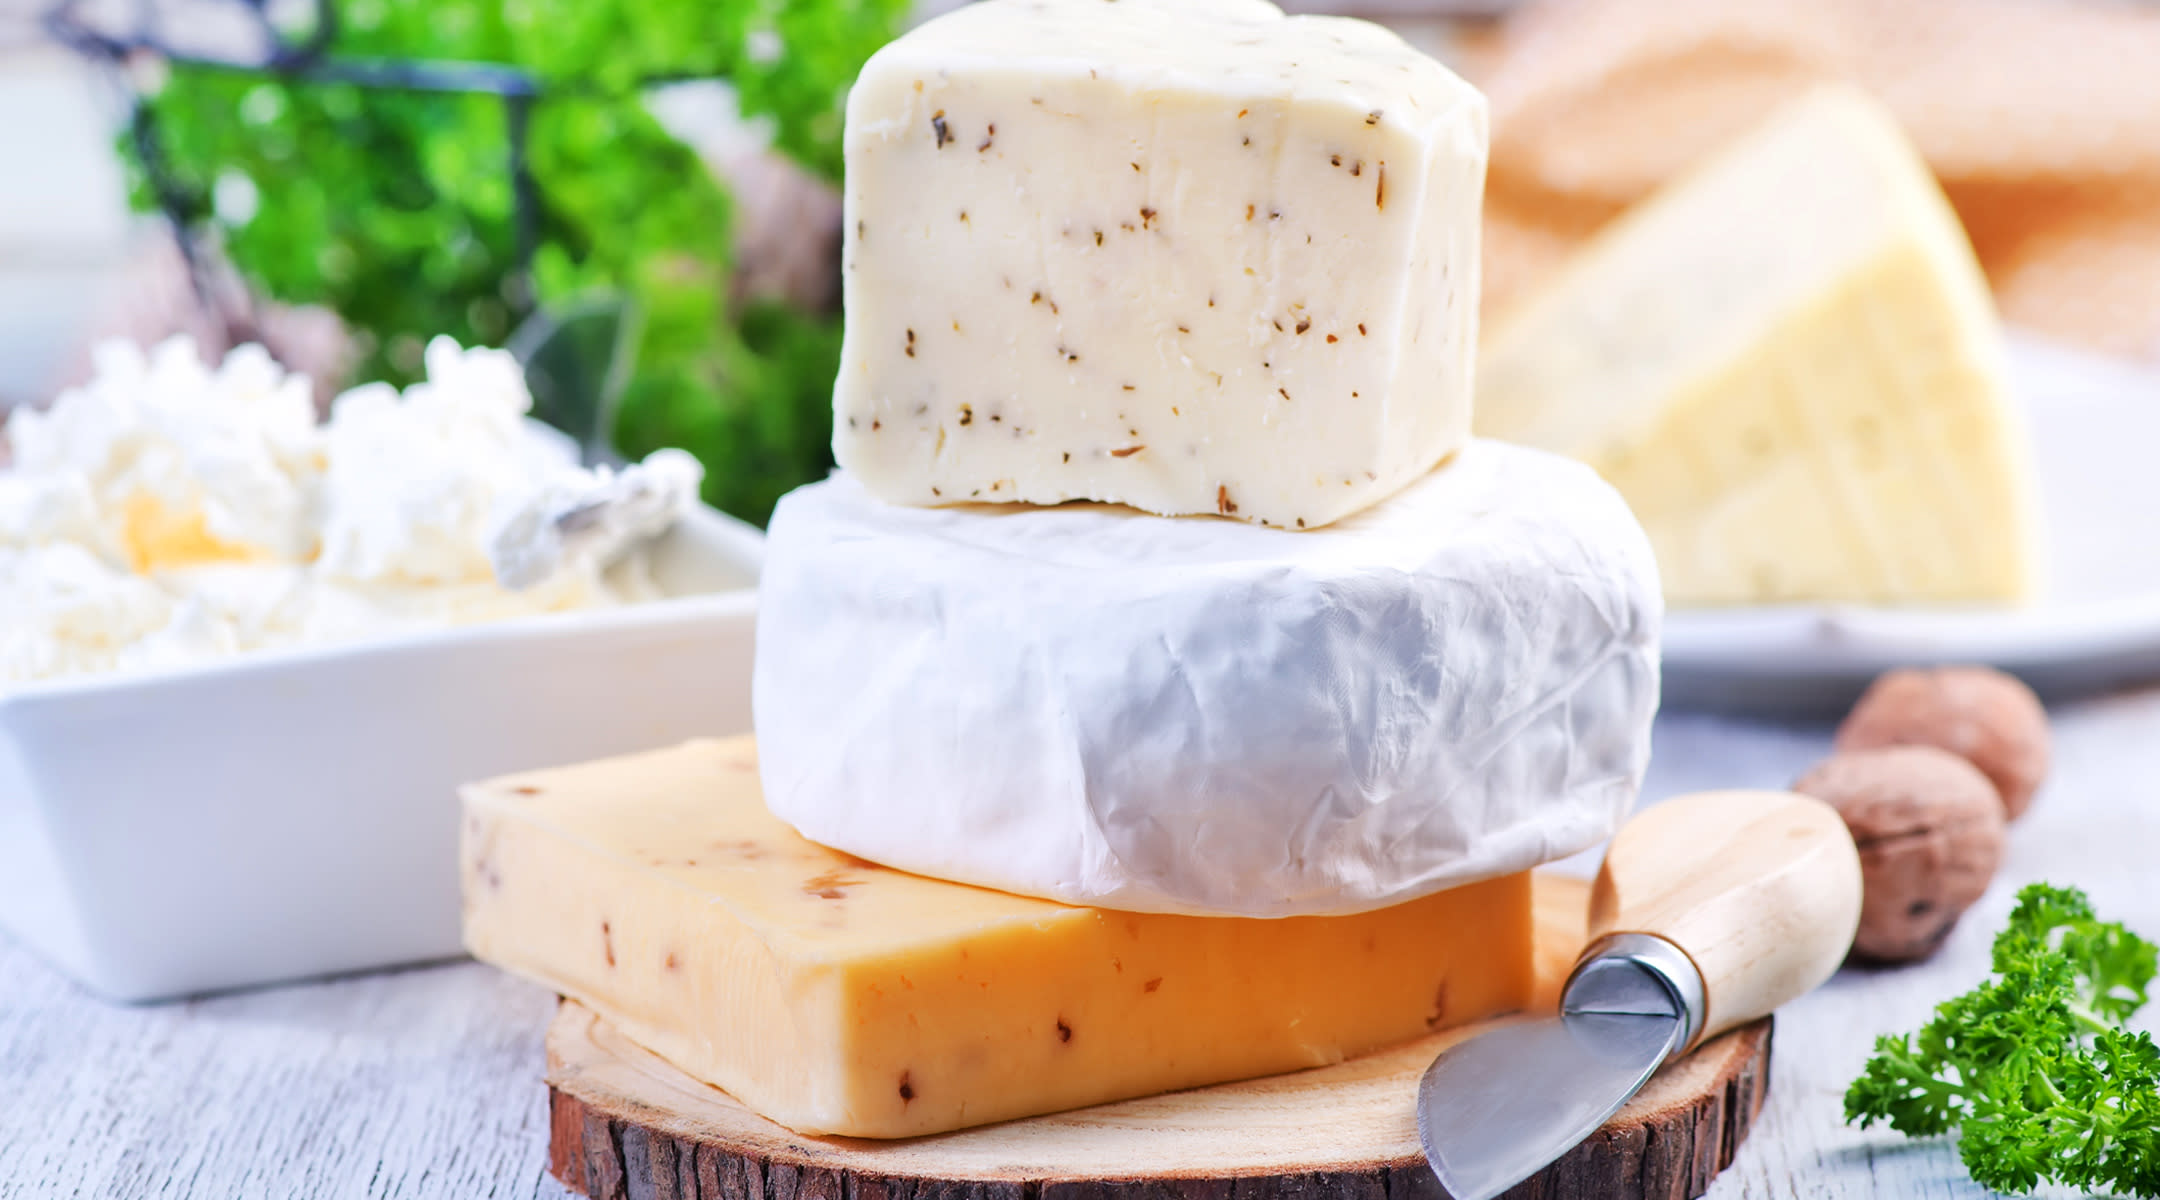 What Cheese Can I Eat While Pregnant halflifetrinfo : foods avoid during pregnancy soft cheese 2160x1200 from halflifetr.info size 2160 x 1200 jpeg 214kB